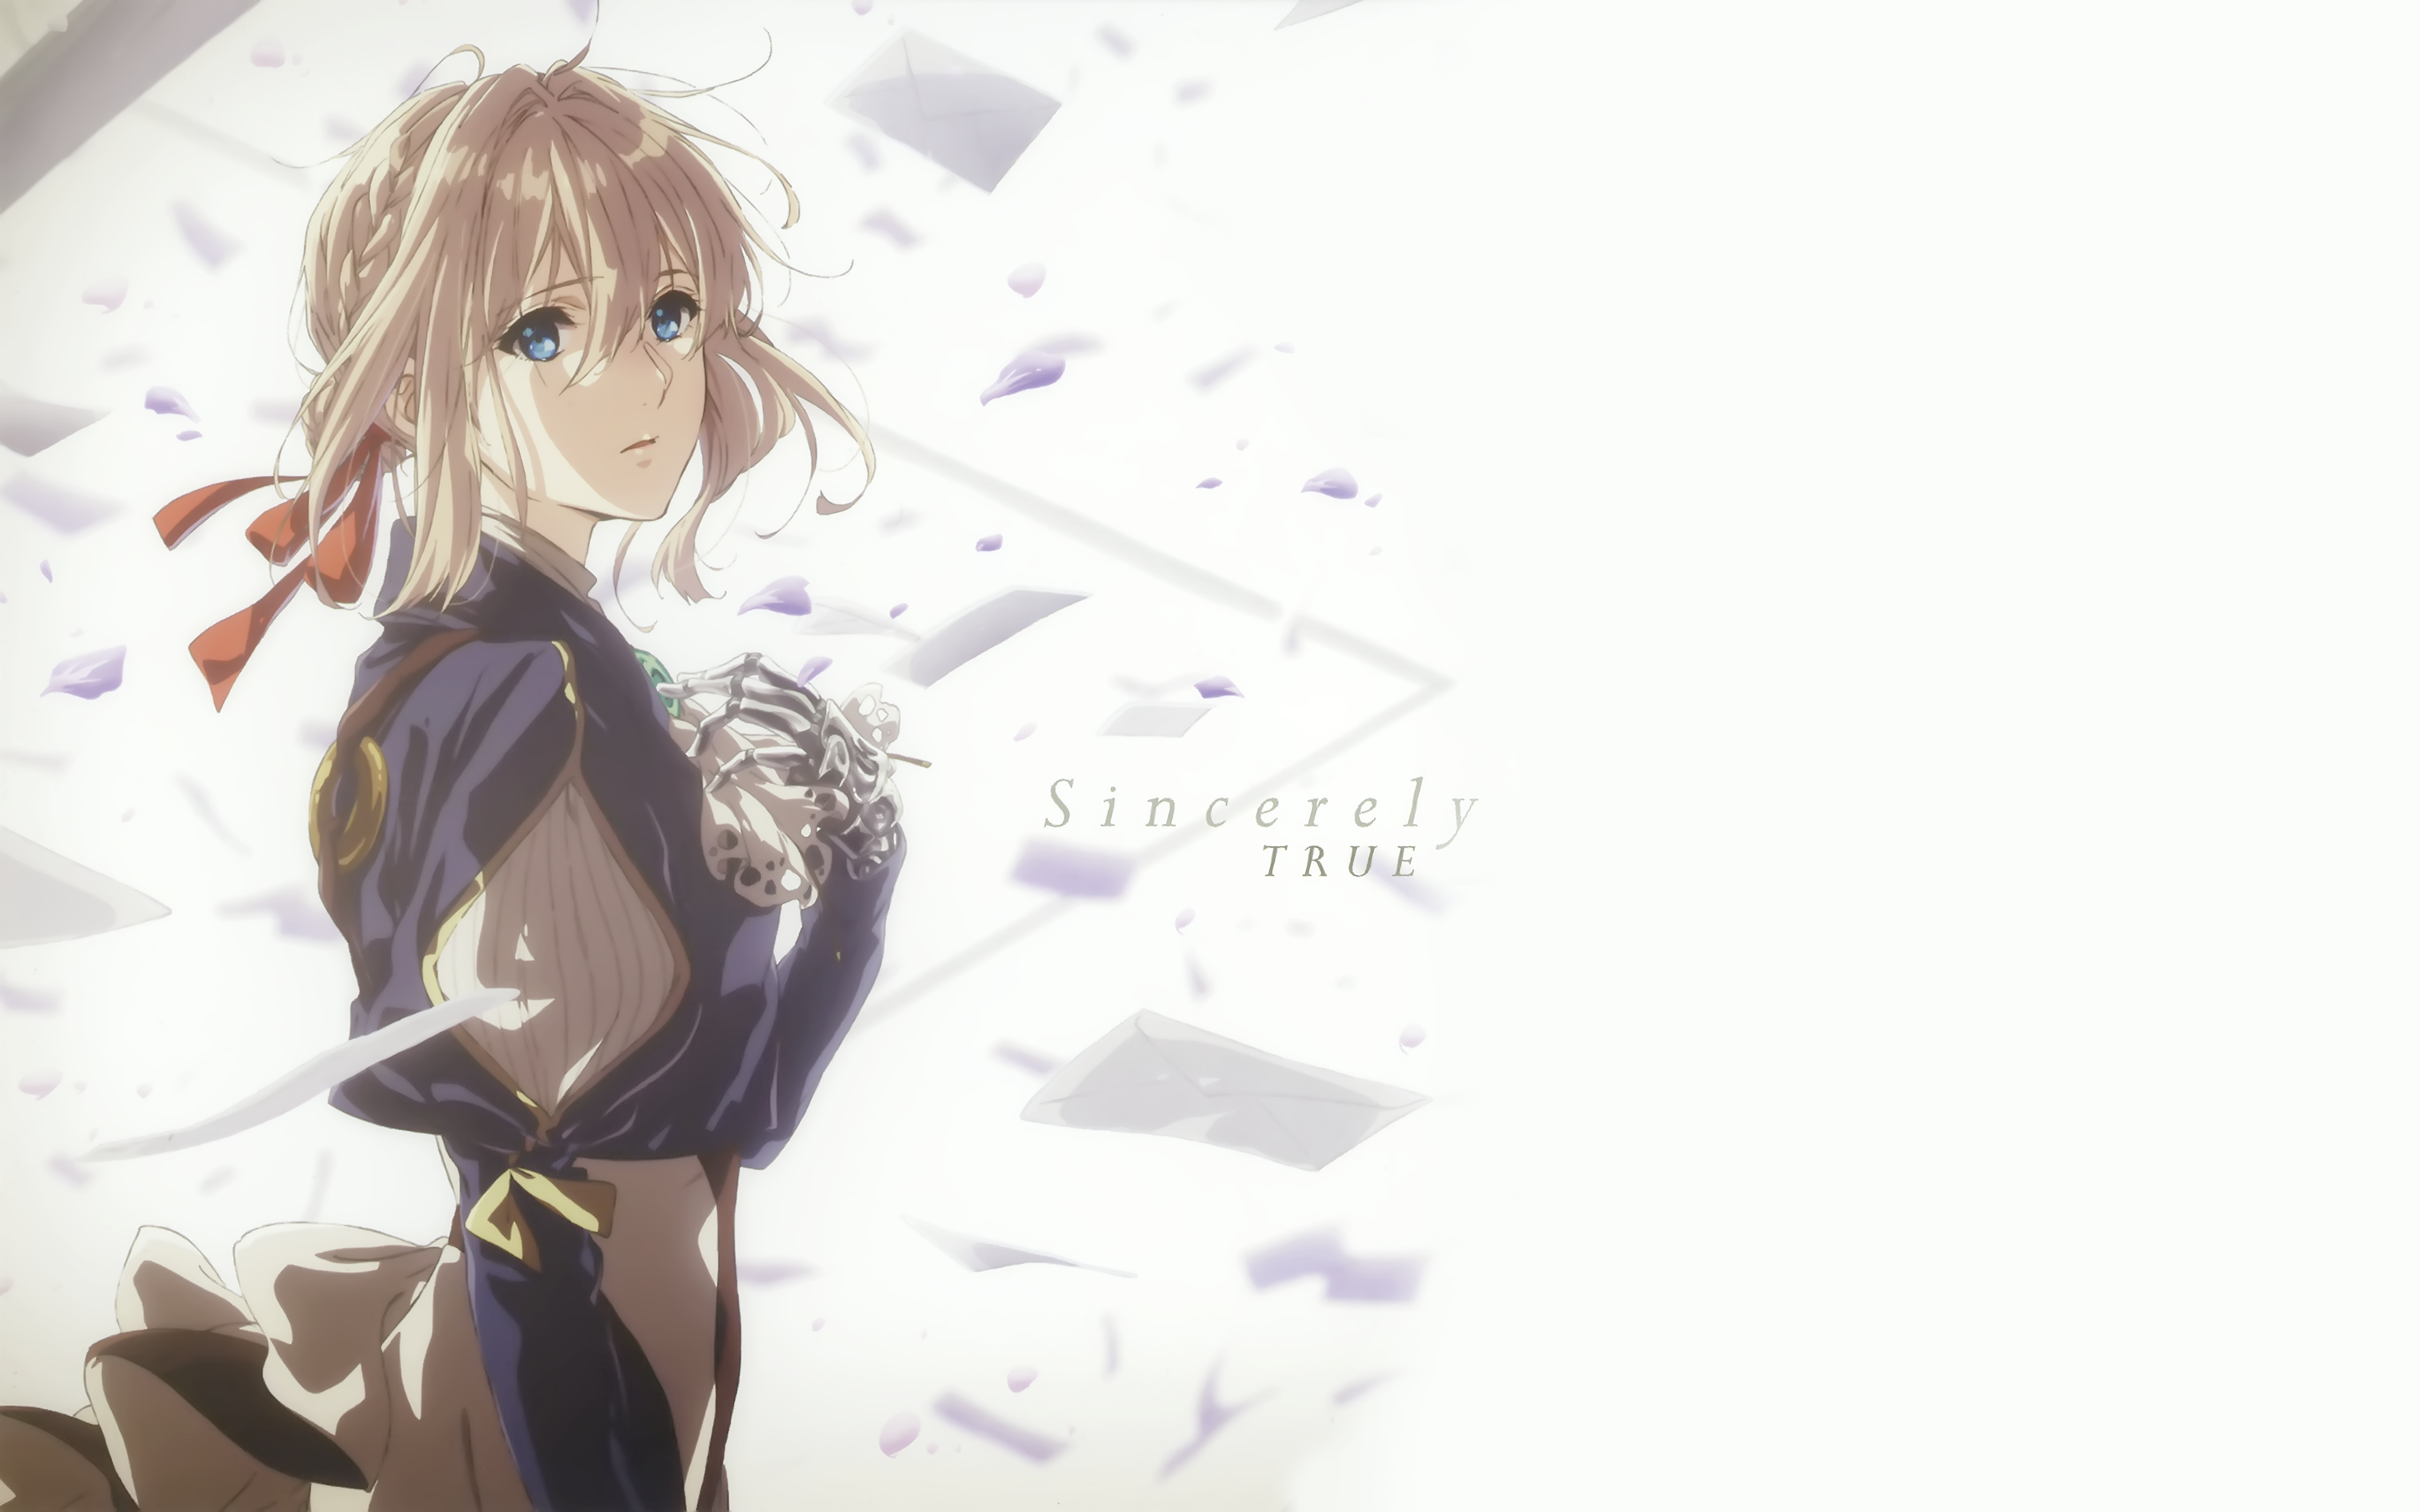 383 Violet Evergarden Hd Wallpapers Background Images